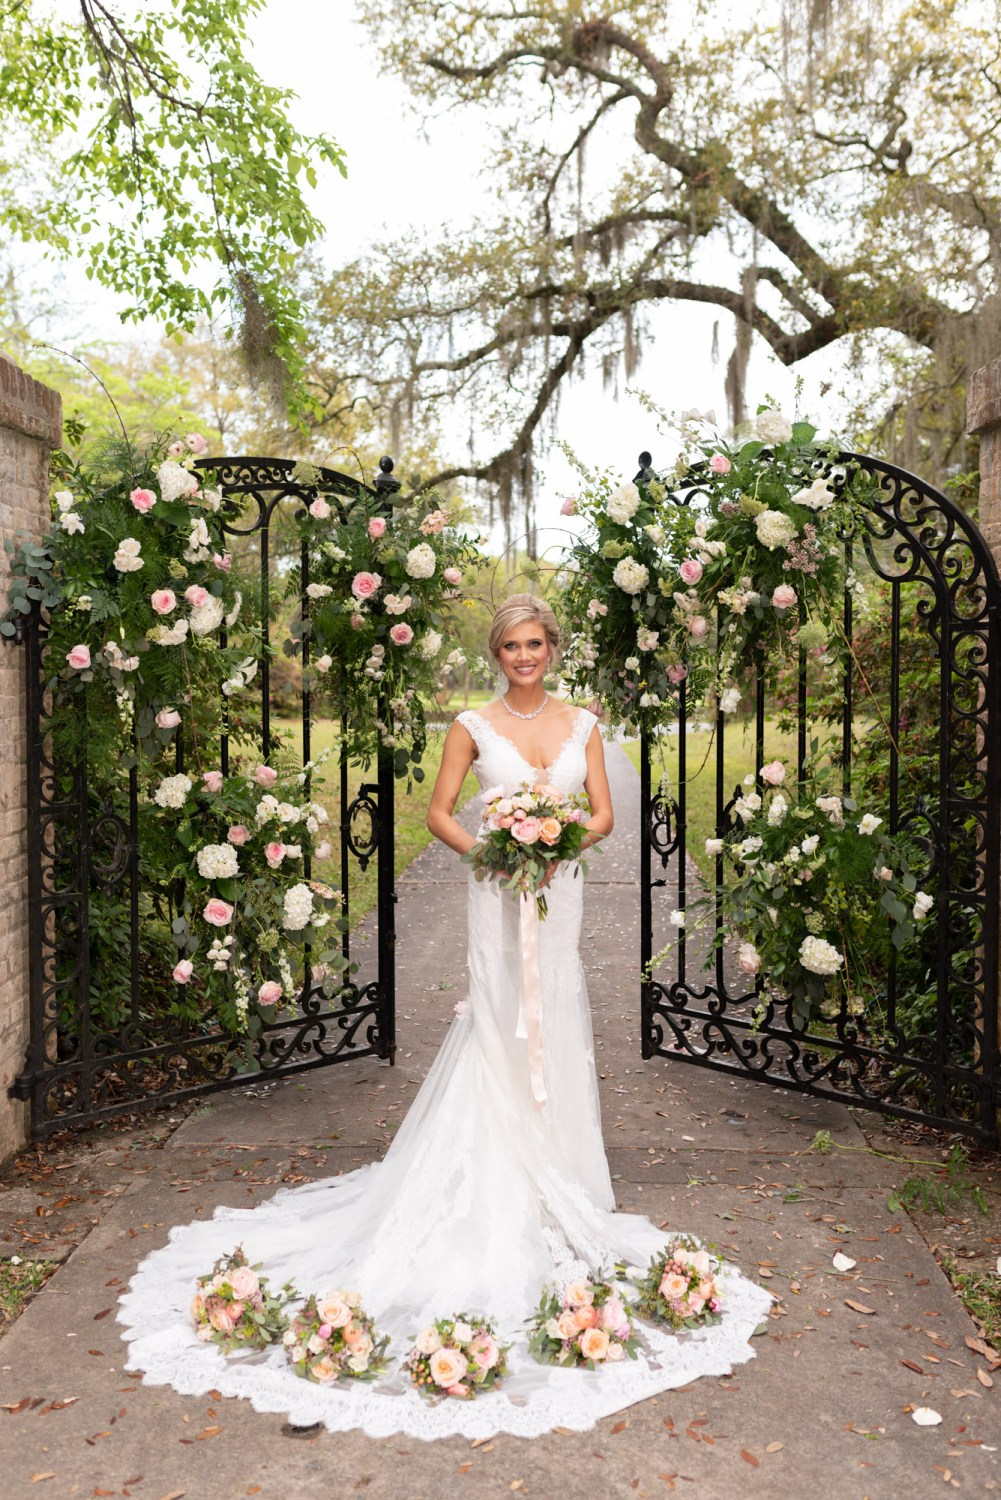 Bride posing in front of the gates - Brookgreen Gardens